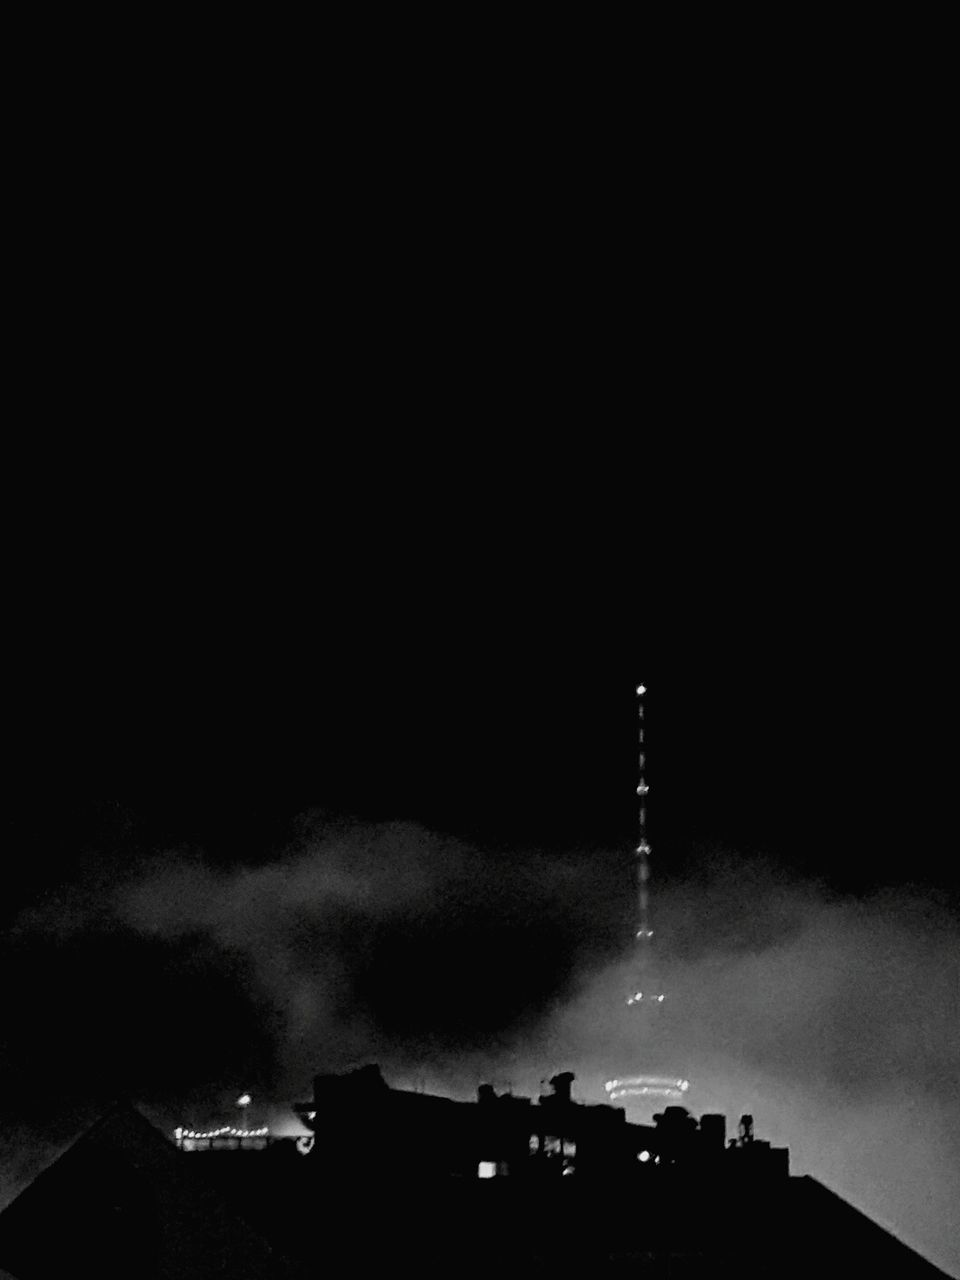 smoke - physical structure, architecture, night, built structure, smoke stack, emitting, chimney, industry, building exterior, sky, factory, low angle view, no people, outdoors, clear sky